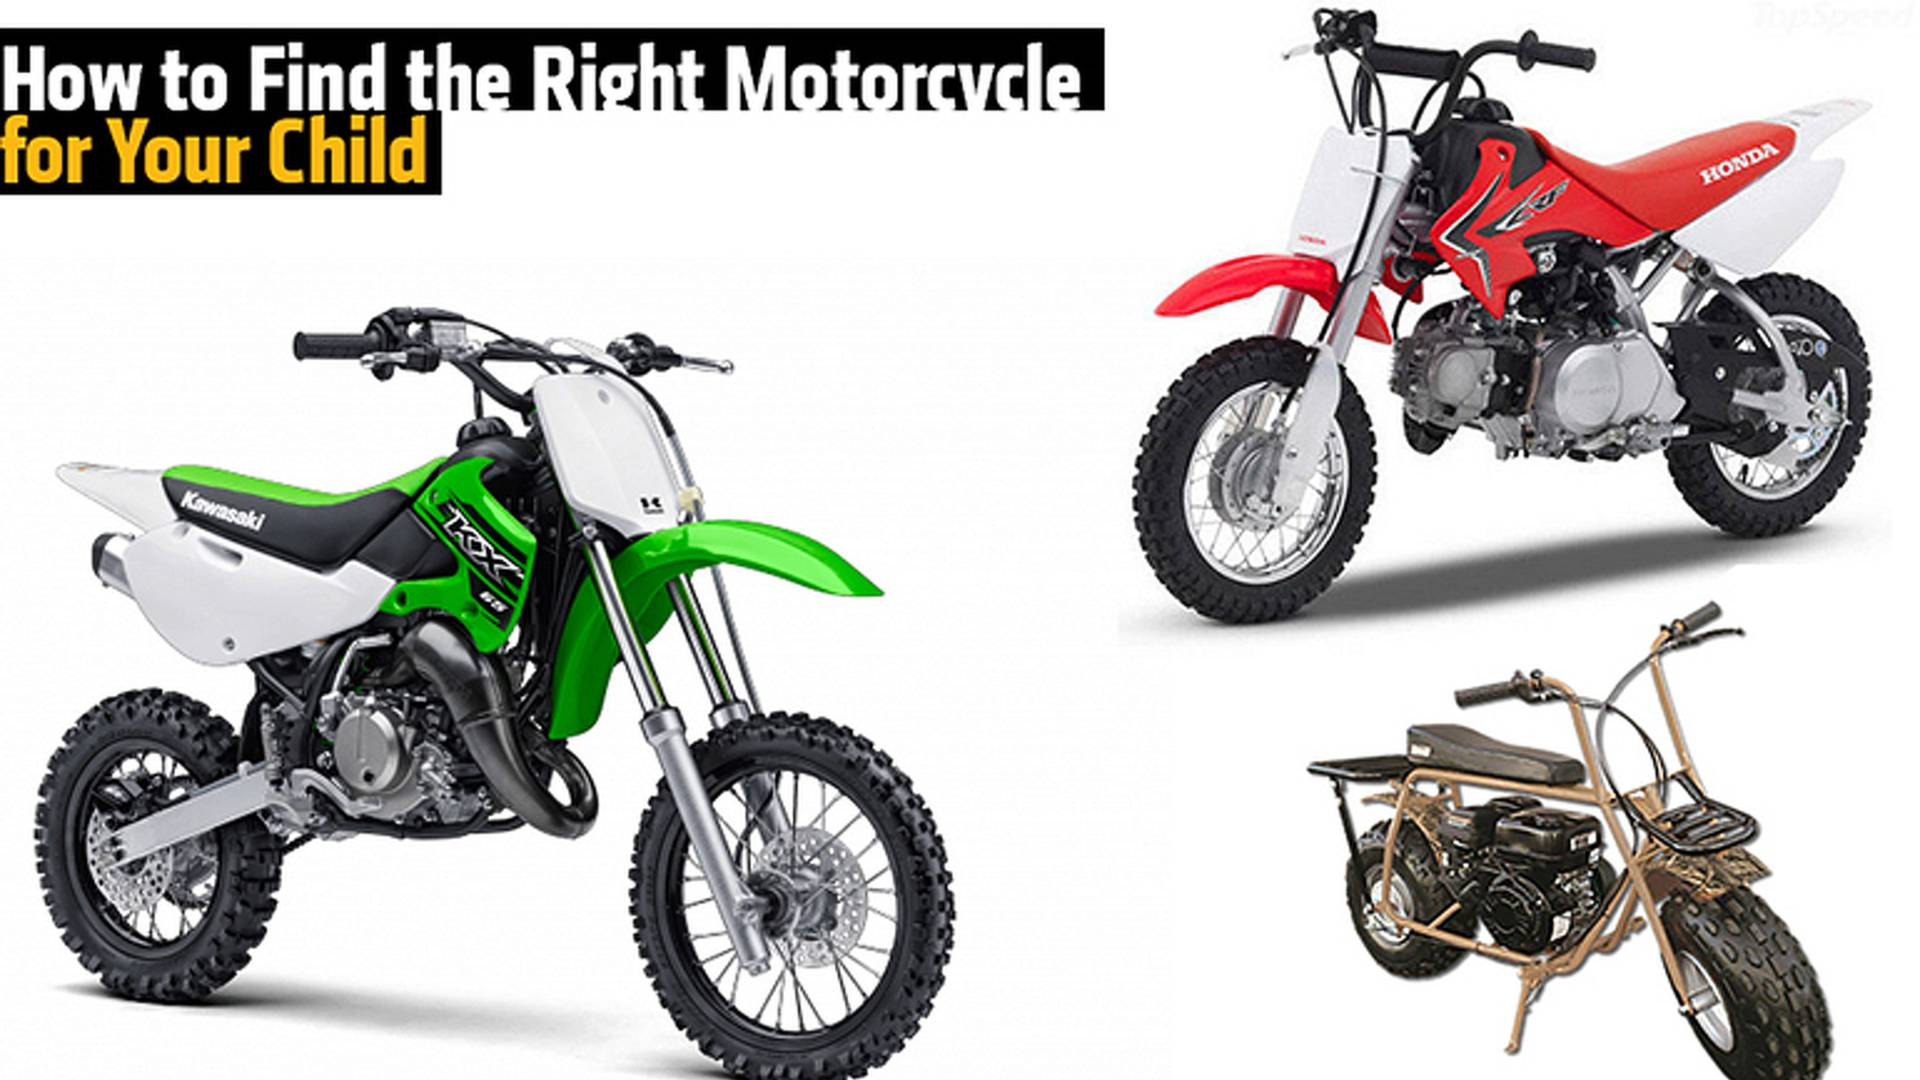 Crf F moreover Thumb Walking Stegosaurus Coloring Page Um besides How To Find The Right Motorcycle For Your Child also D Carburetor Adjustment Problem Constant Stalls When Gased Atv Carburetor Diagram further . on honda crf230f wiring diagram